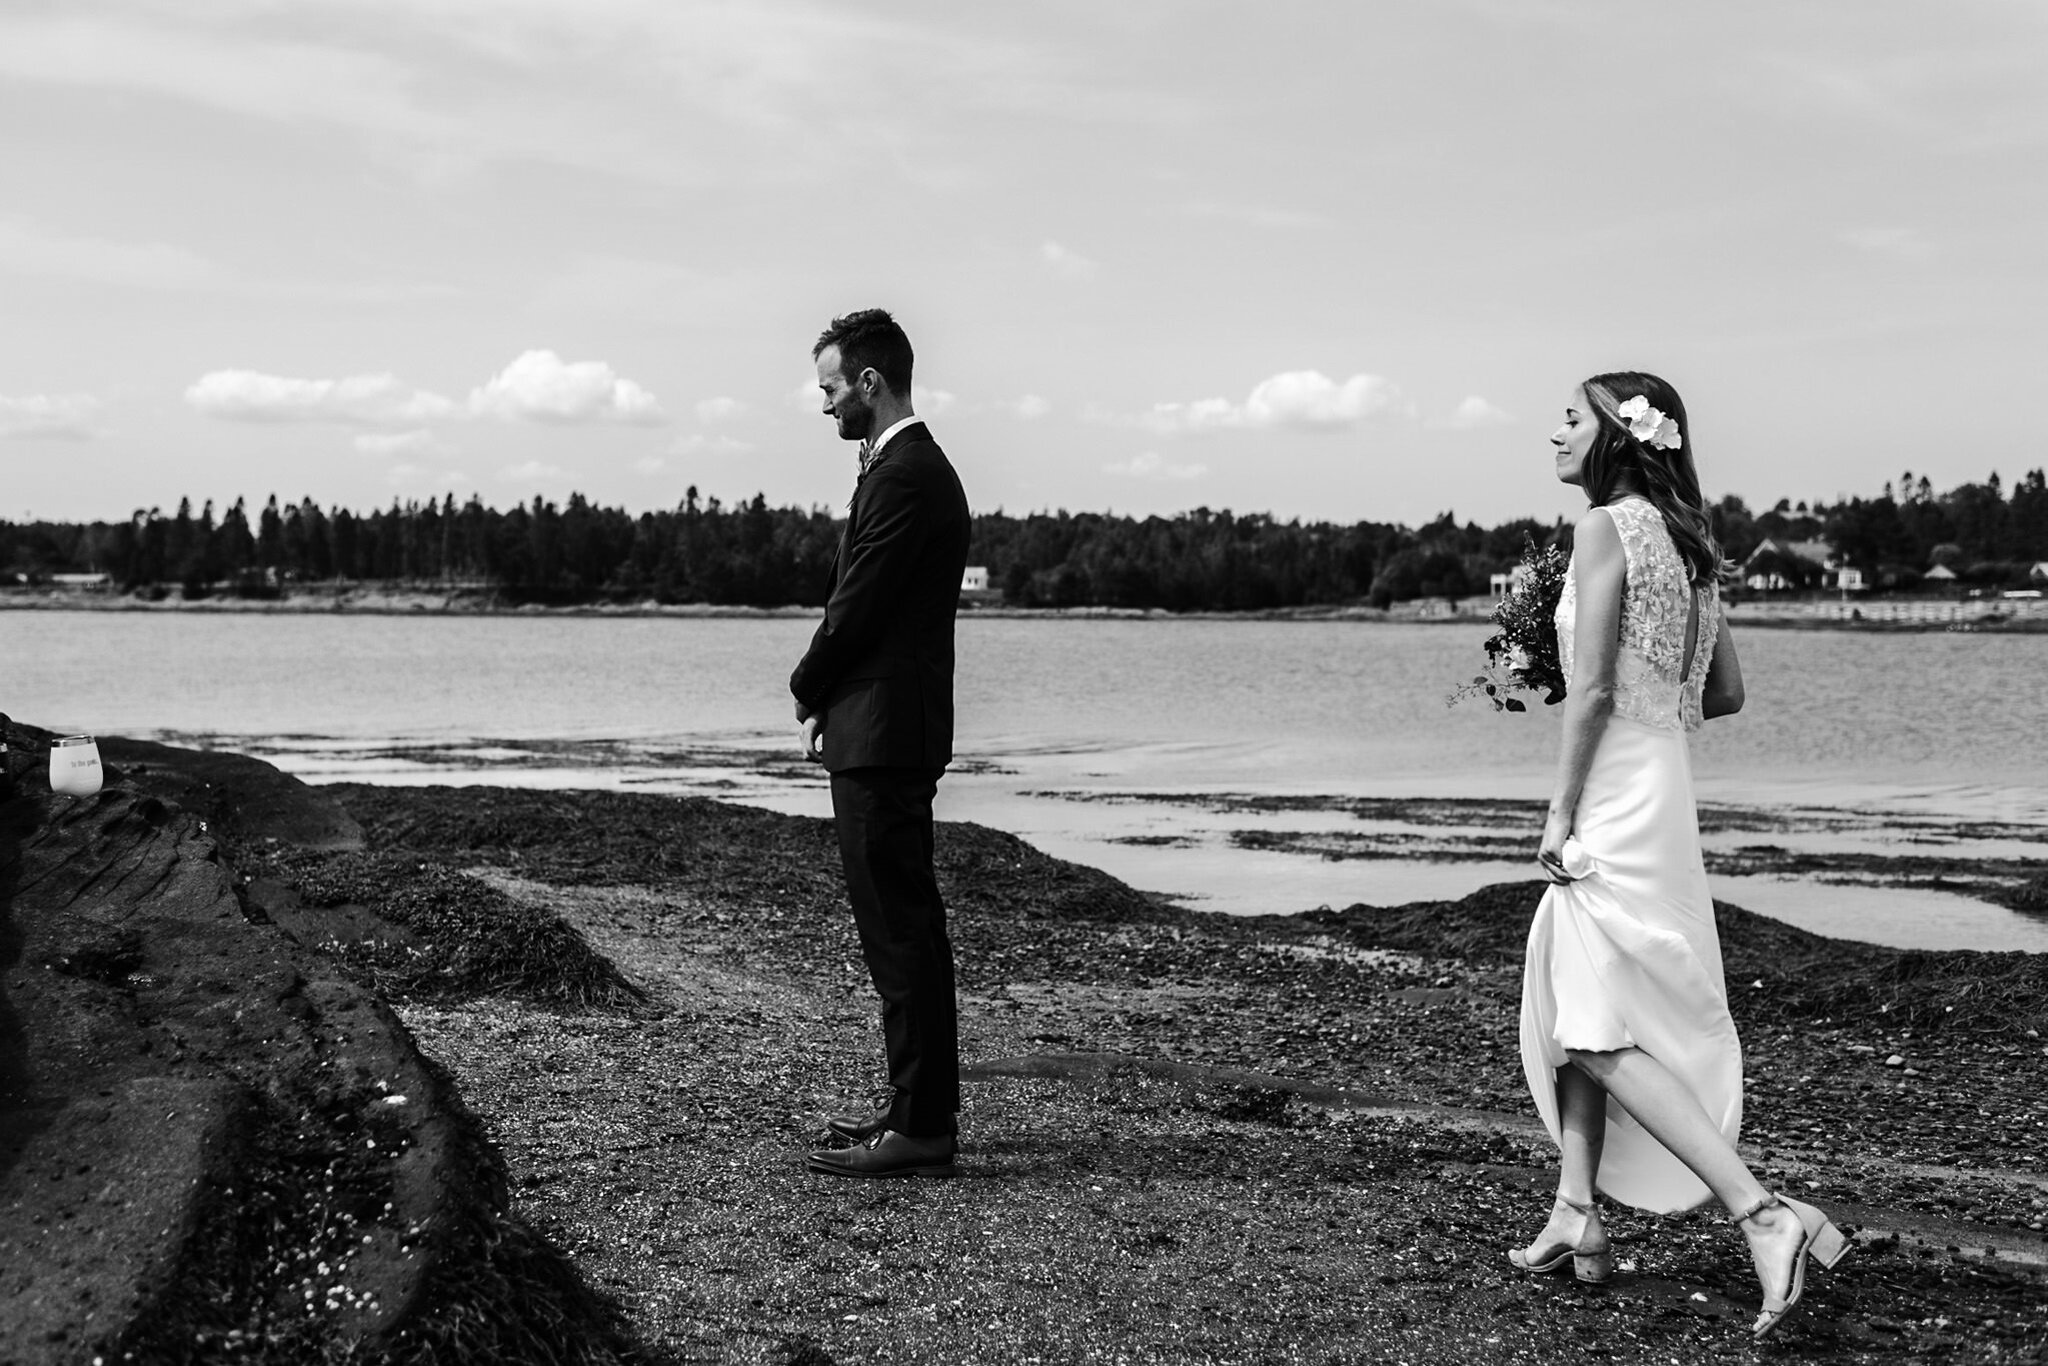 235-emotional-first-look-bride-groom-wedding-photography-new-brunswick.jpg